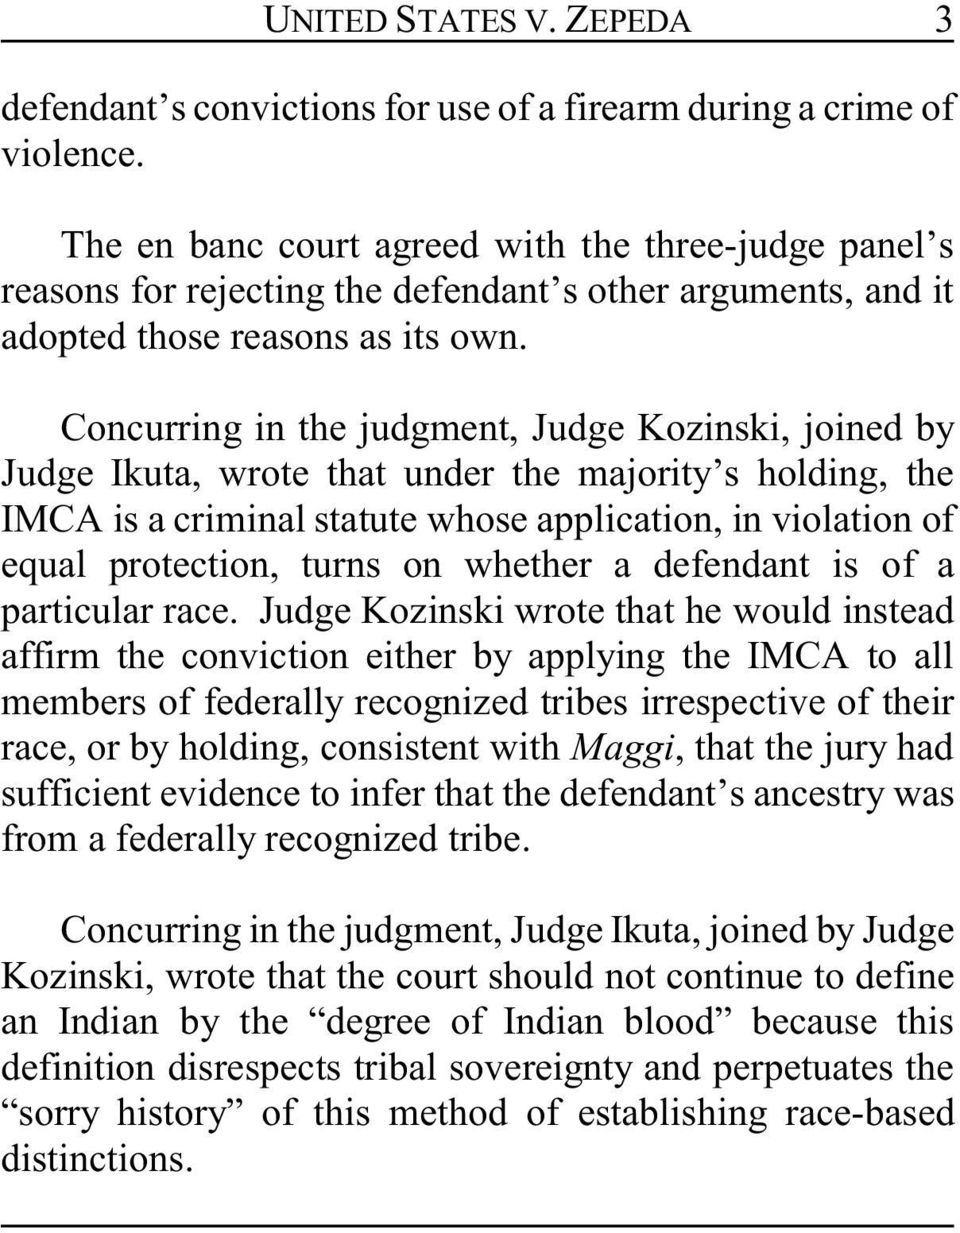 Concurring in the judgment, Judge Kozinski, joined by Judge Ikuta, wrote that under the majority s holding, the IMCA is a criminal statute whose application, in violation of equal protection, turns